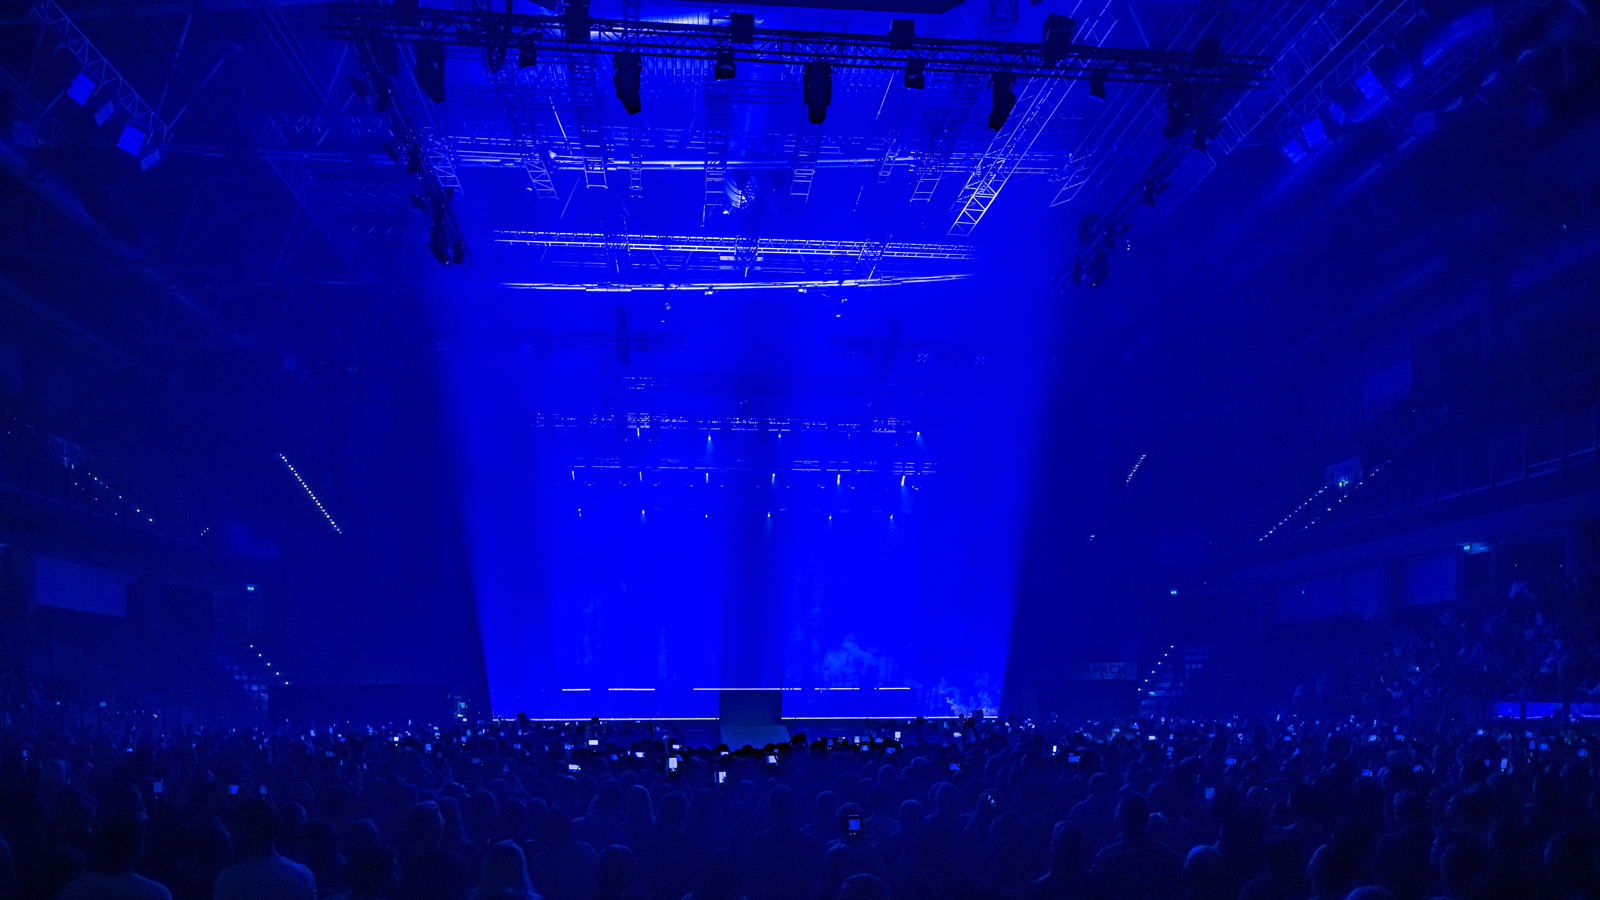 Over 150 GLP fixtures for Wincent Weiss' production 'Somehow Different'